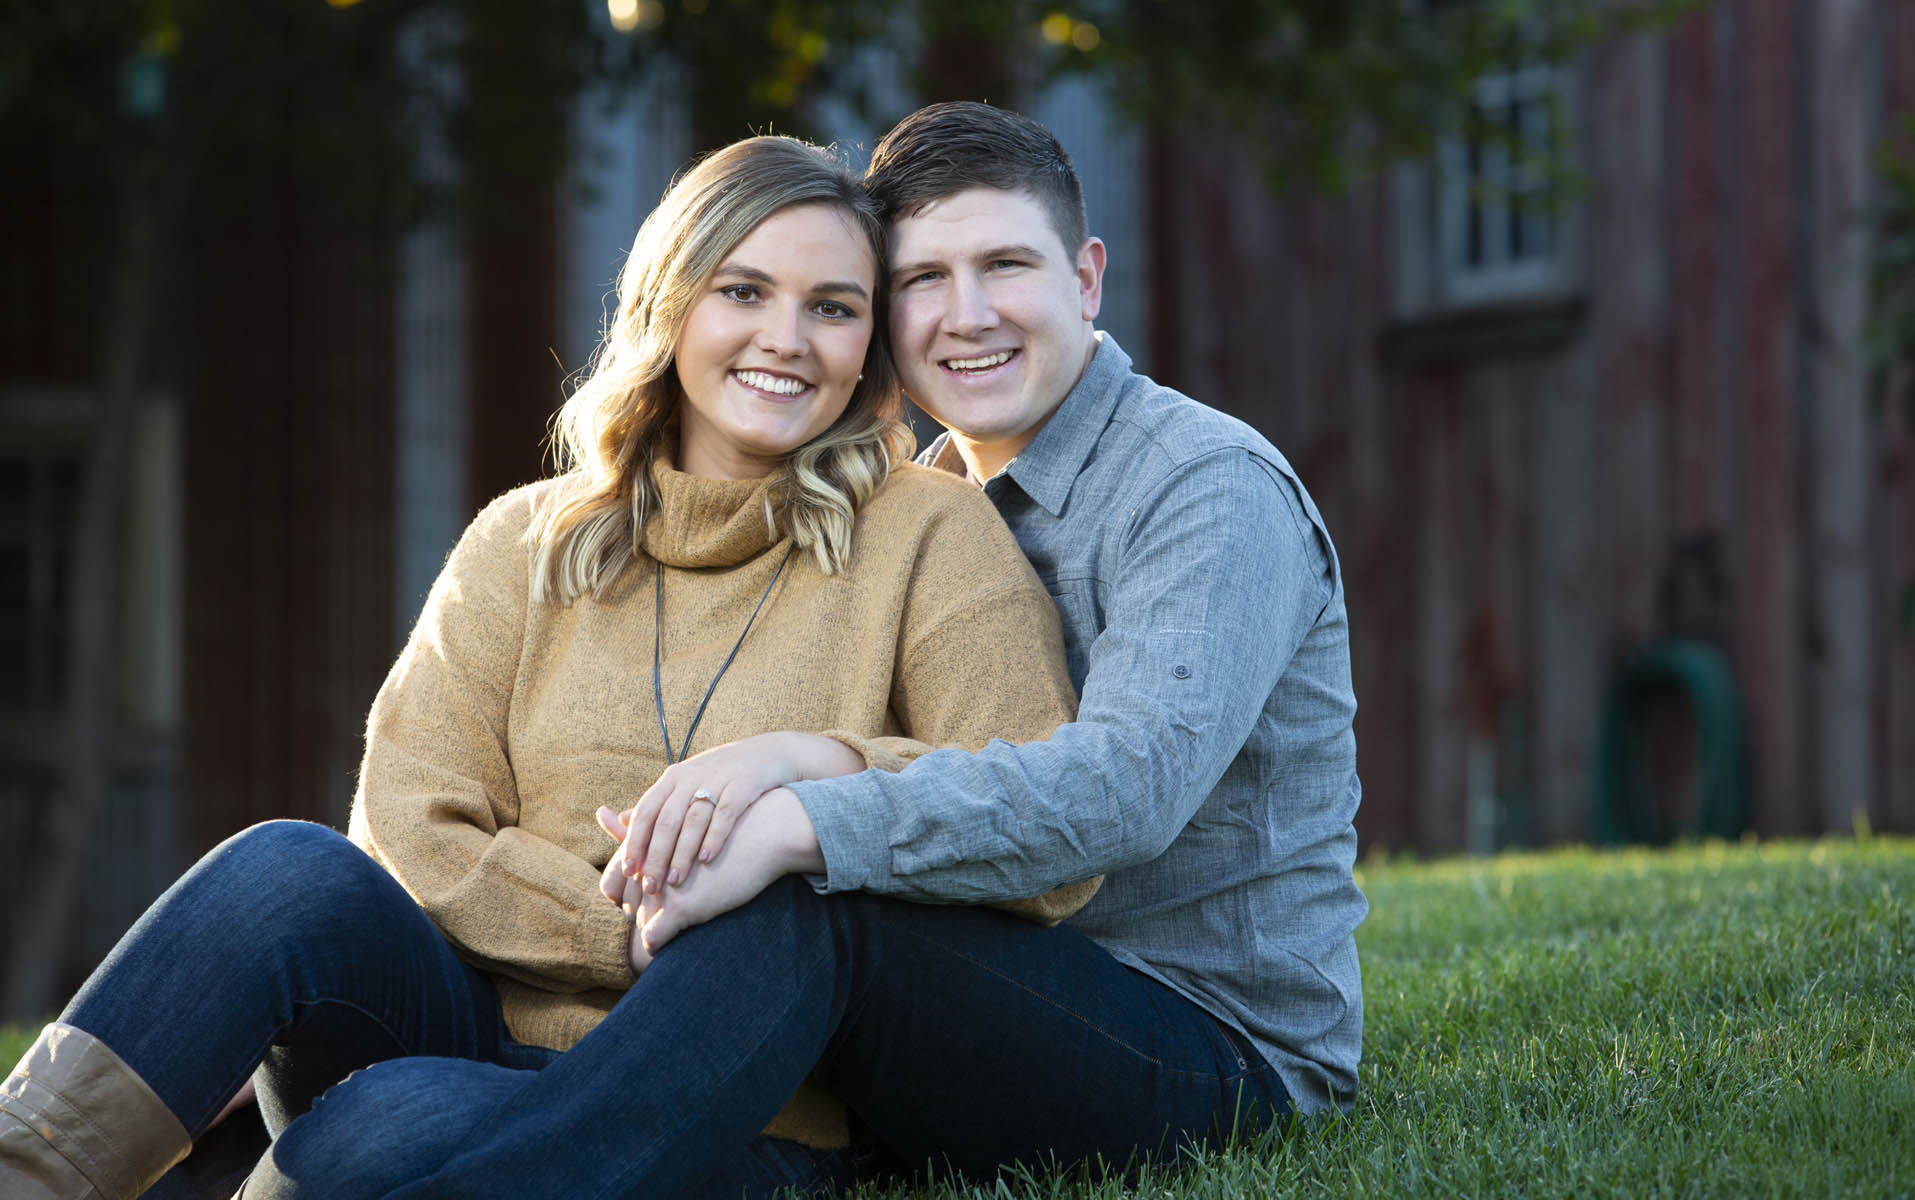 Cyndey Musch & Dakota Longleyengagement session 4 October 2019 at Bomke's Patch near SpringfieldWedding to be 6 June 2020Photos by Steve & Tiffany of Warmowski Photography http://www.warmowskiphoto.com 217.473.5581 - 191004